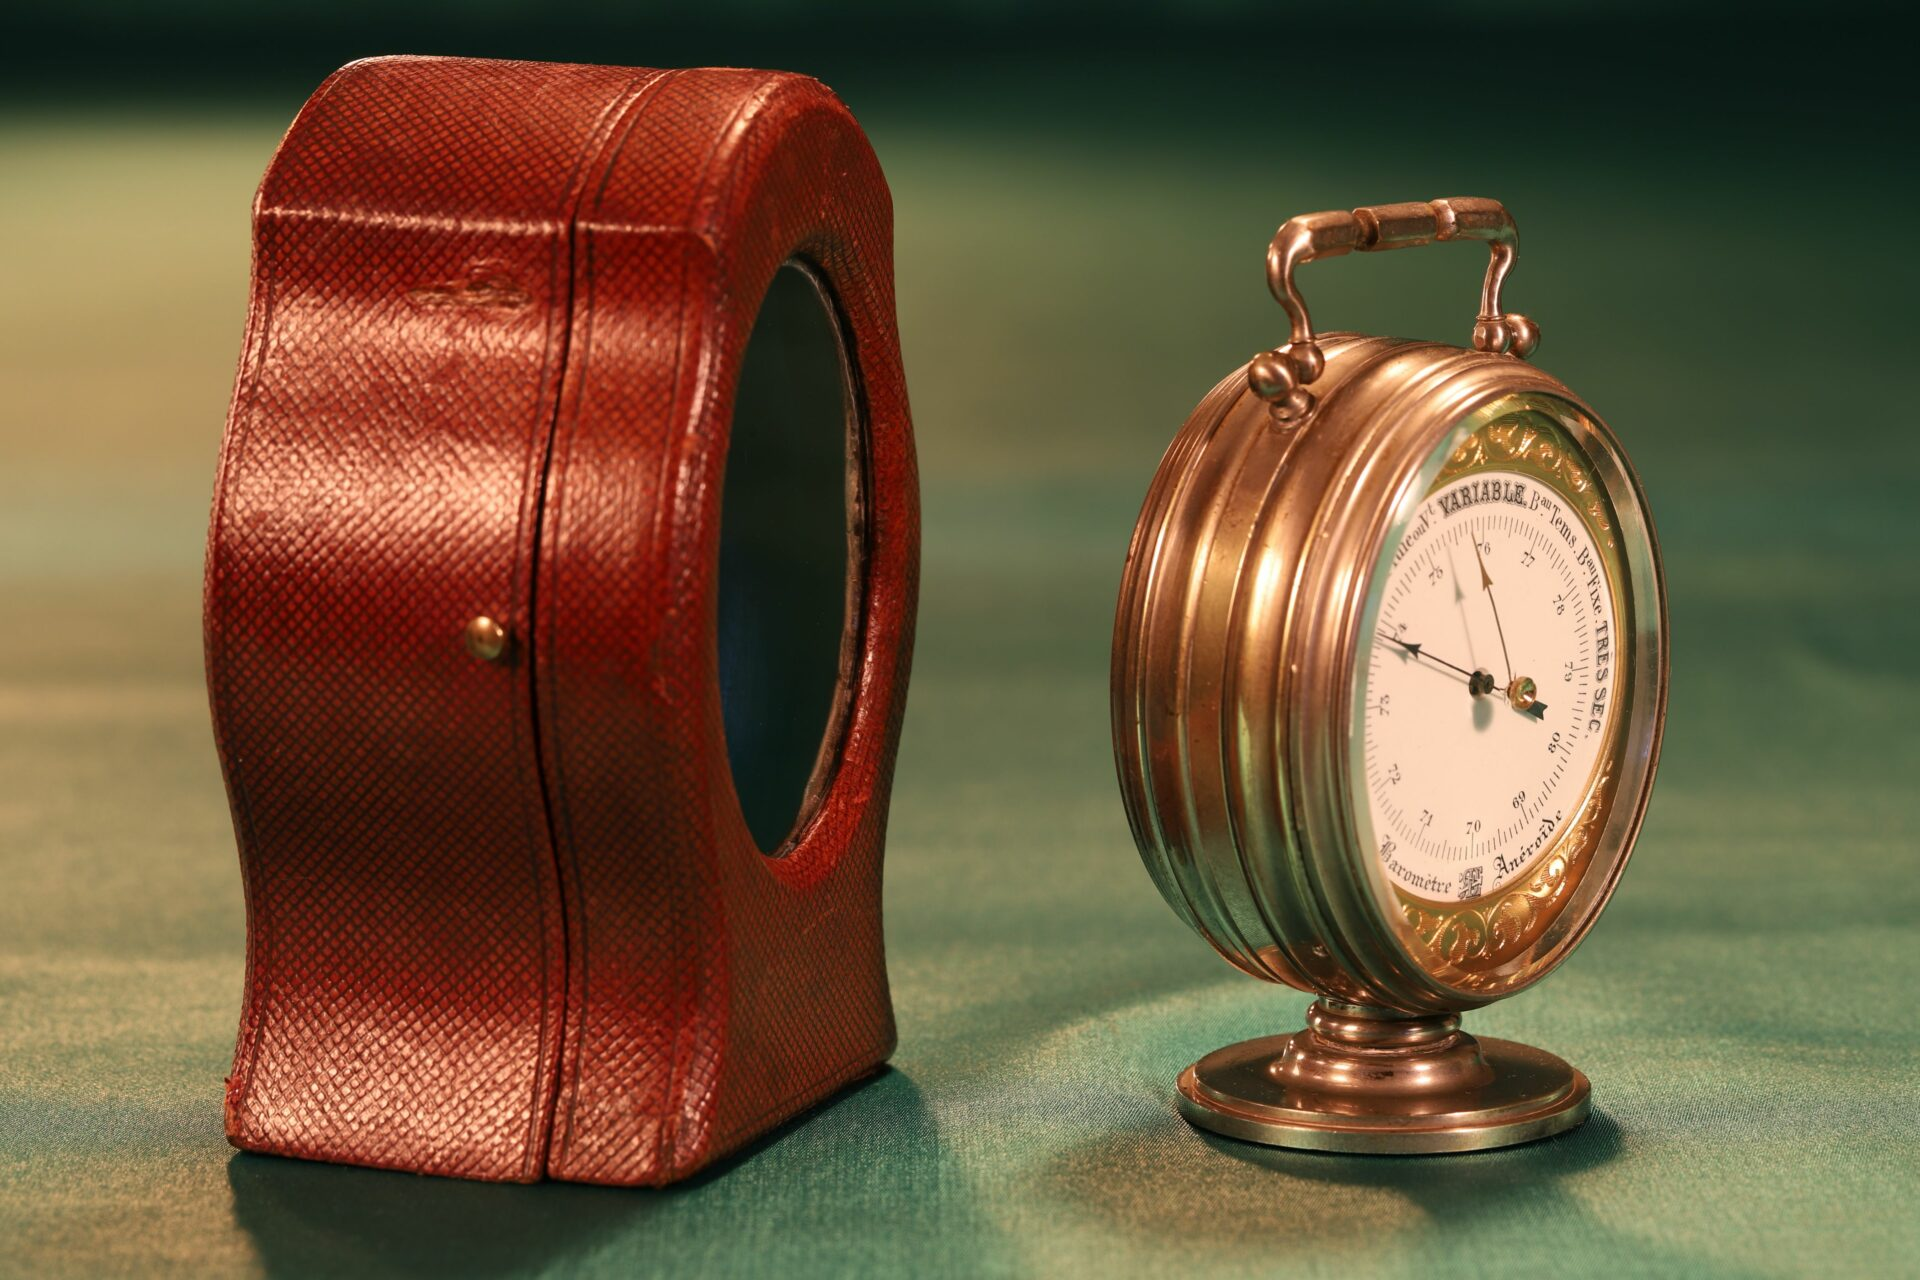 Image of Redier Travel Compendium showing the Barometer and the Original Travel Case taken from the left c1880